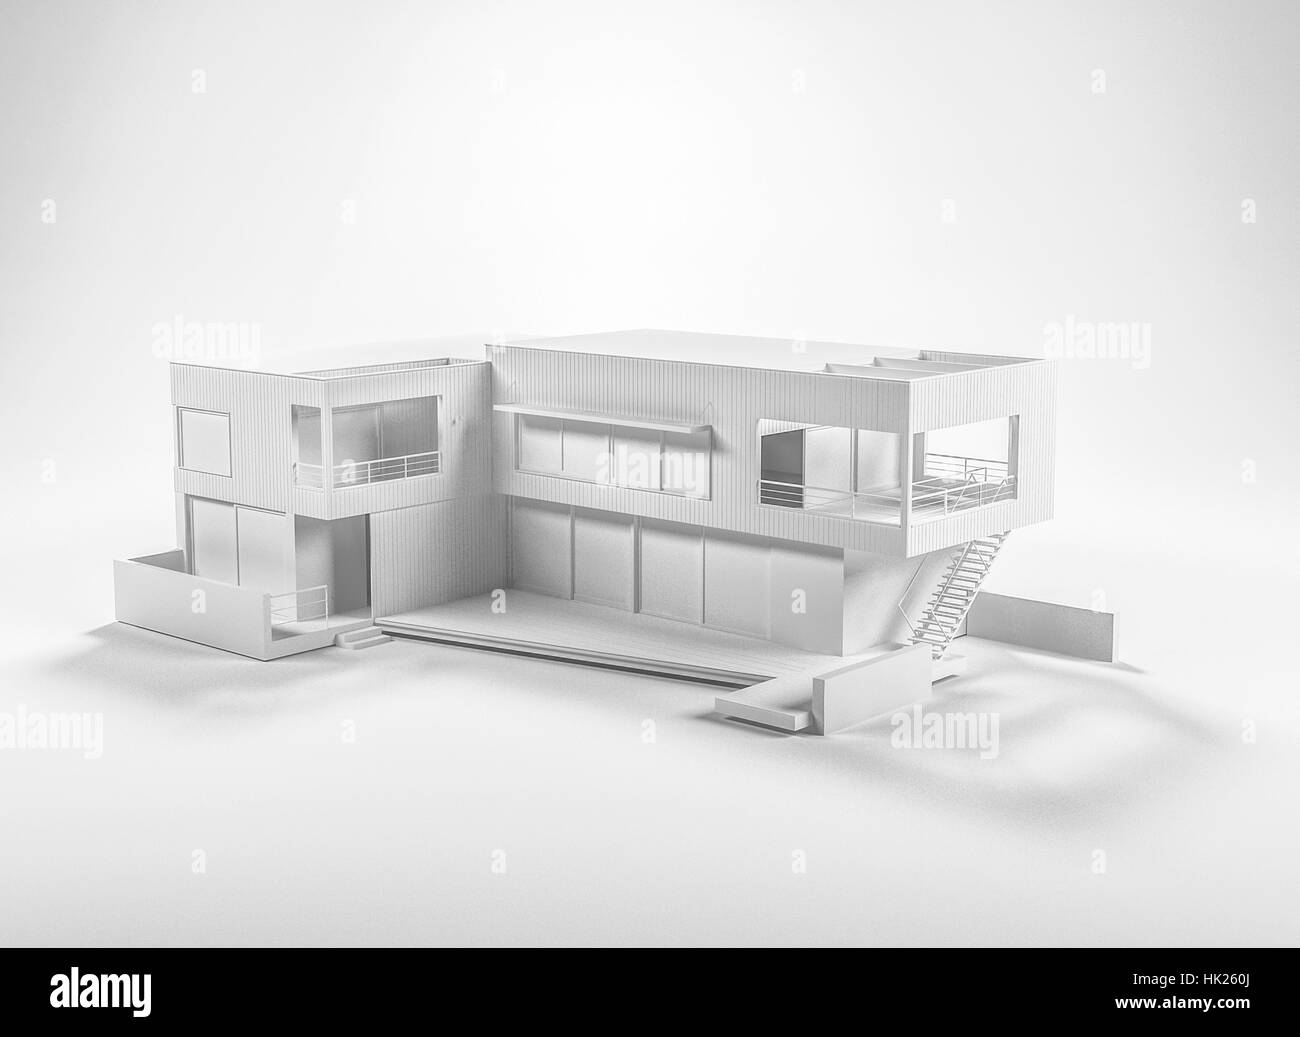 3d Modeling Rendering And Animation Architecture Background Concept With Grey Building 3d Model